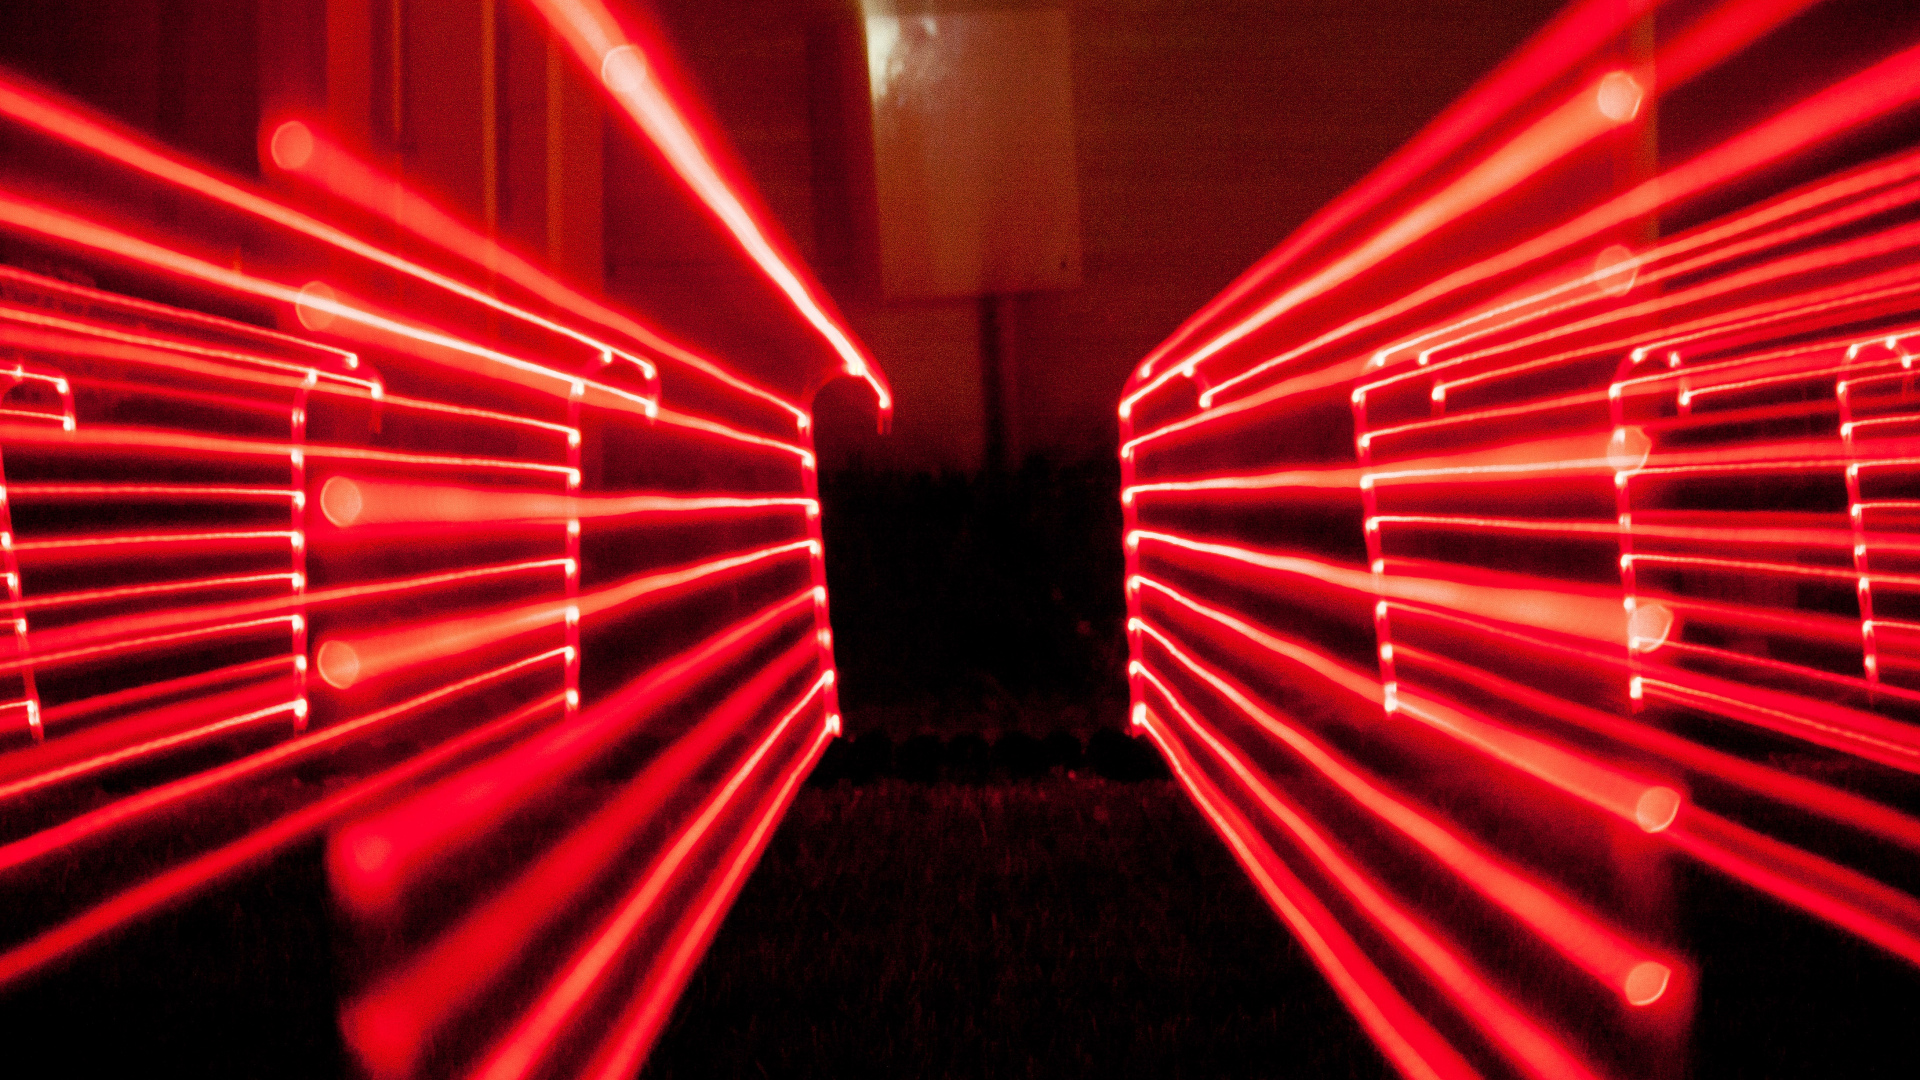 led candy canes streaking red light like a laser fence